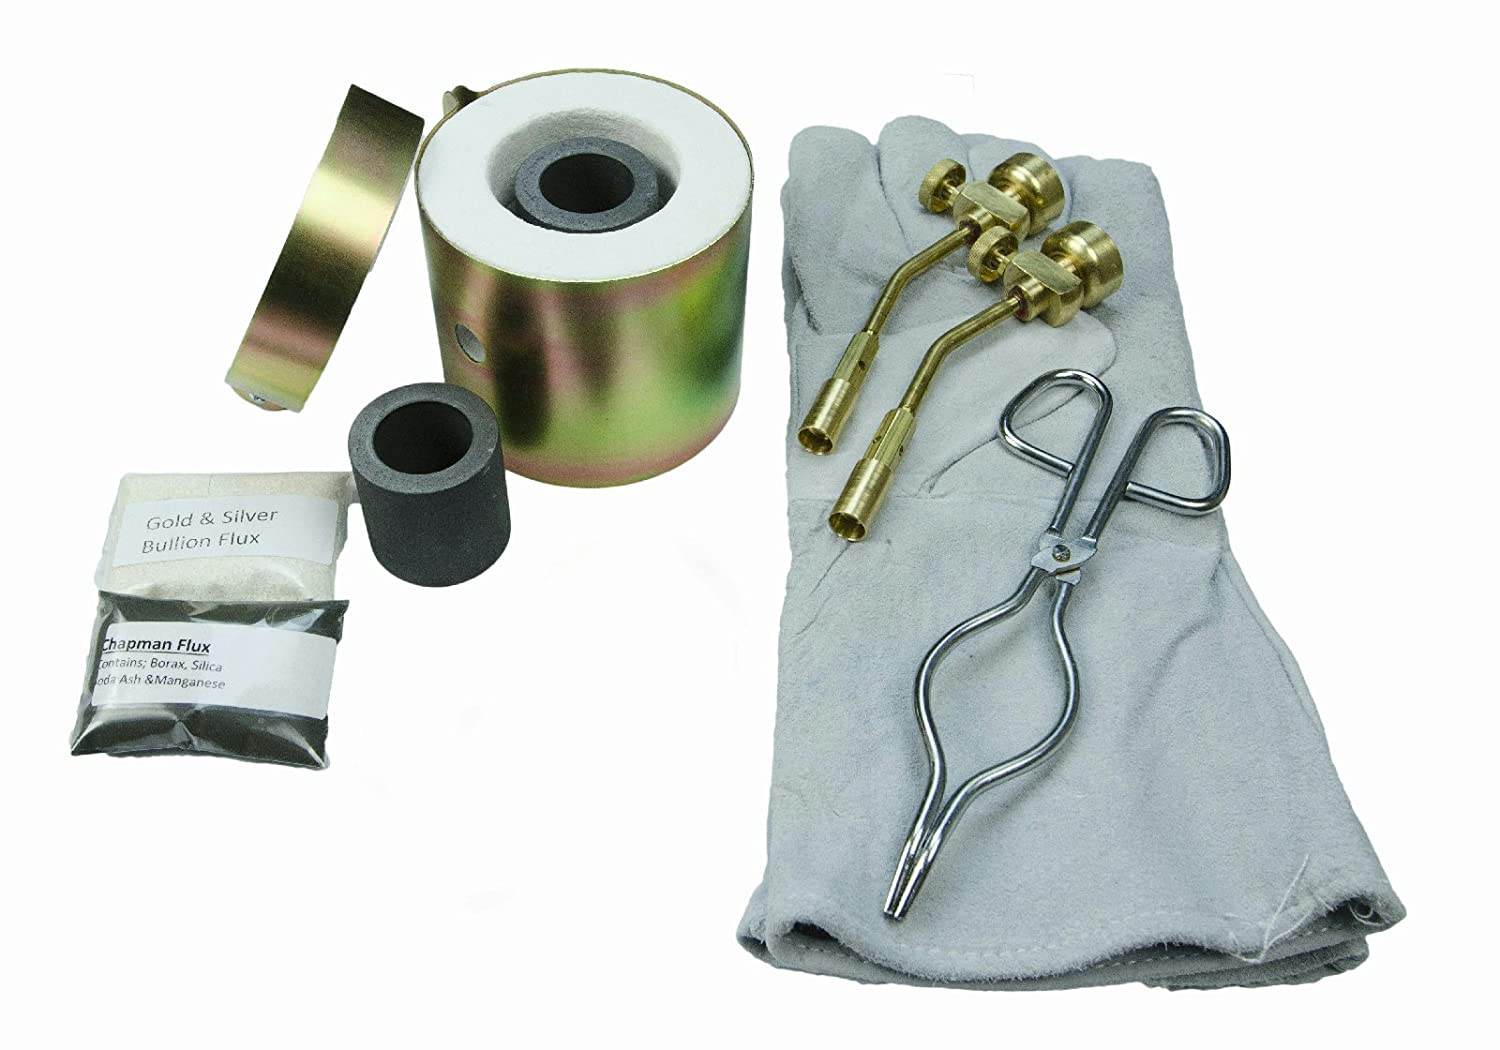 Mini Propane Gas Furnace - Kiln, Flux, 2- Tips, Leather Gloves, 2-Crucibles, Tongs - Kit FFC-7 - Melts in 10 Minutes - Melt Rings, Chains, Gold Nuggets - Flour Gold - Make Jewlery - MADE in the USA The Fast Furnace Company